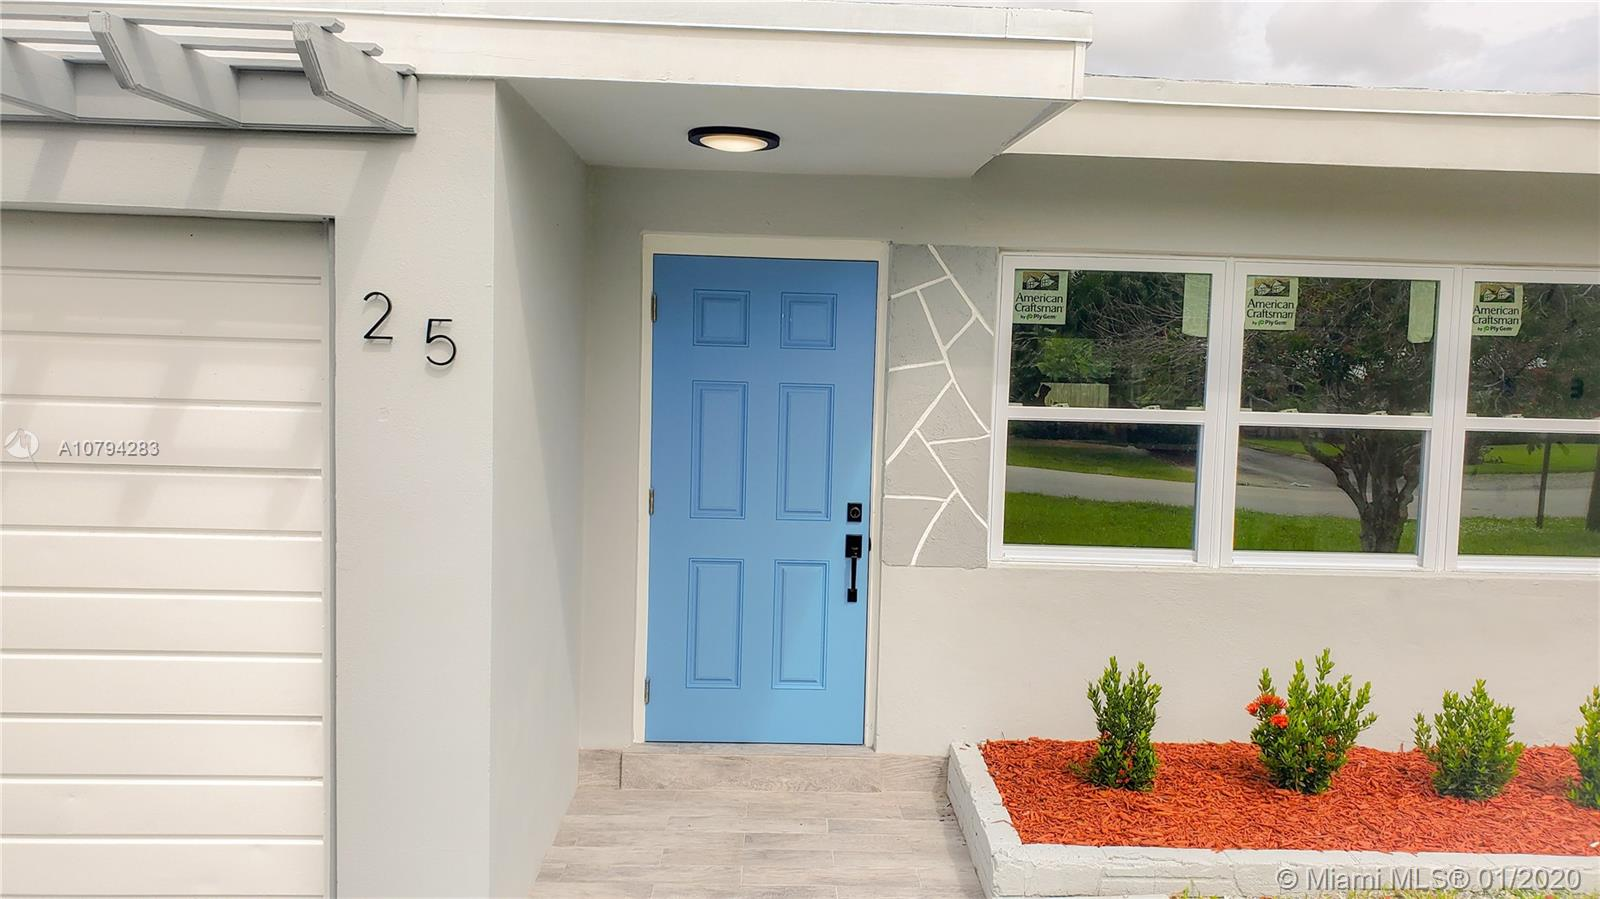 Beautifully renovated home at Wilton Manors, one of the most desirable municipalities in South Florida. This gem features 3 bedrooms and two bathrooms with two car garage and ocean access canal. Open floor plan with an amazing custom made and modern U shape design kitchen with two tones cabinets and quartz counter-tops plus brand new stainless steel appliances. Brand new roof, new impact rated windows and doors, new HVAC, new 100% waterproof LVP floors, laundry room equipped with brand new washer and dryer, new water heater. This beauty is seating in huge corner lot with room for a boat and room for a pool in the backyard. This is a unique opportunity to own a paradise minutes from the beach and enjoy Florida.